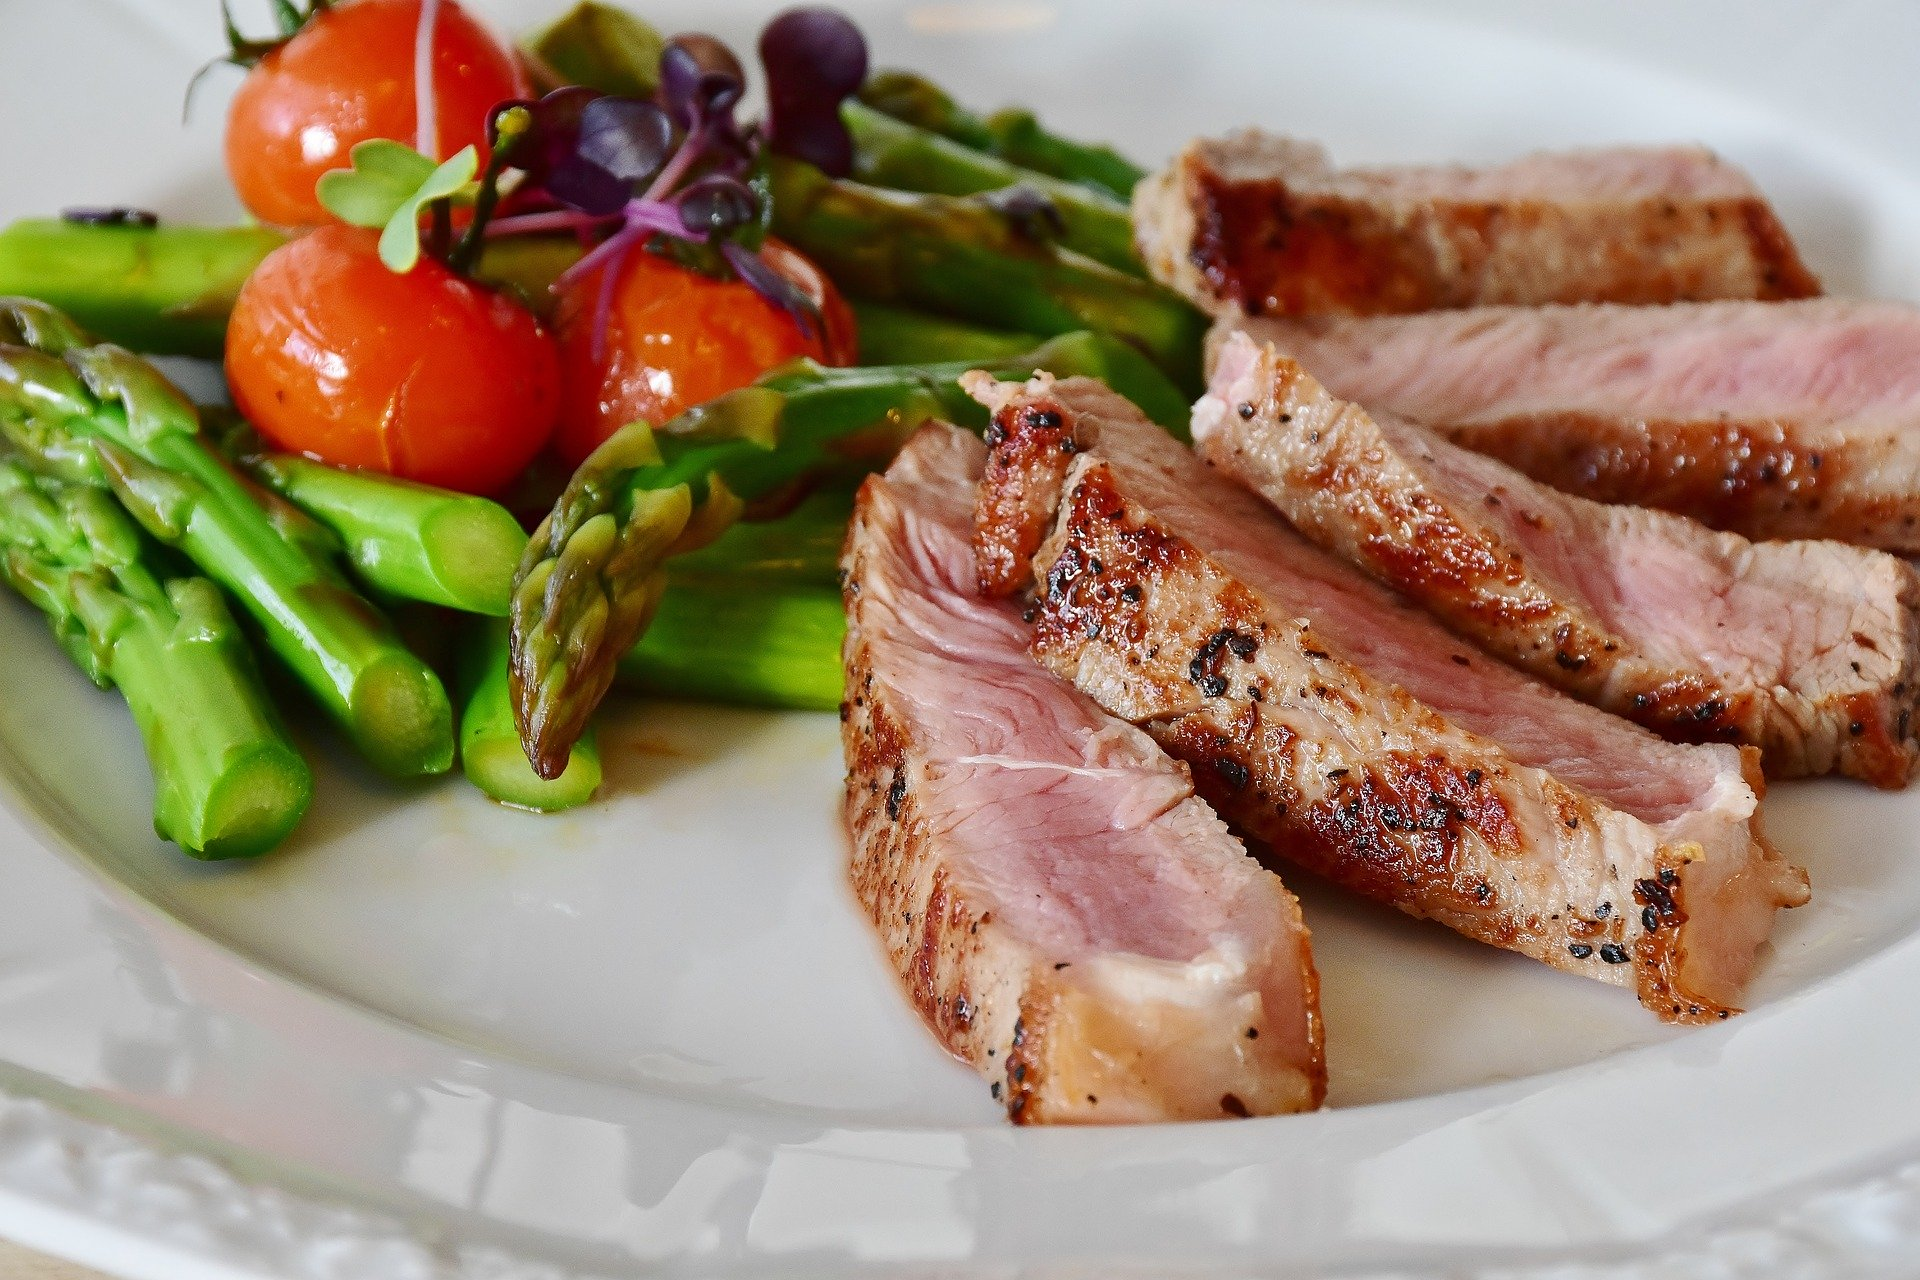 Hassle-Free Ways to Cook Meat